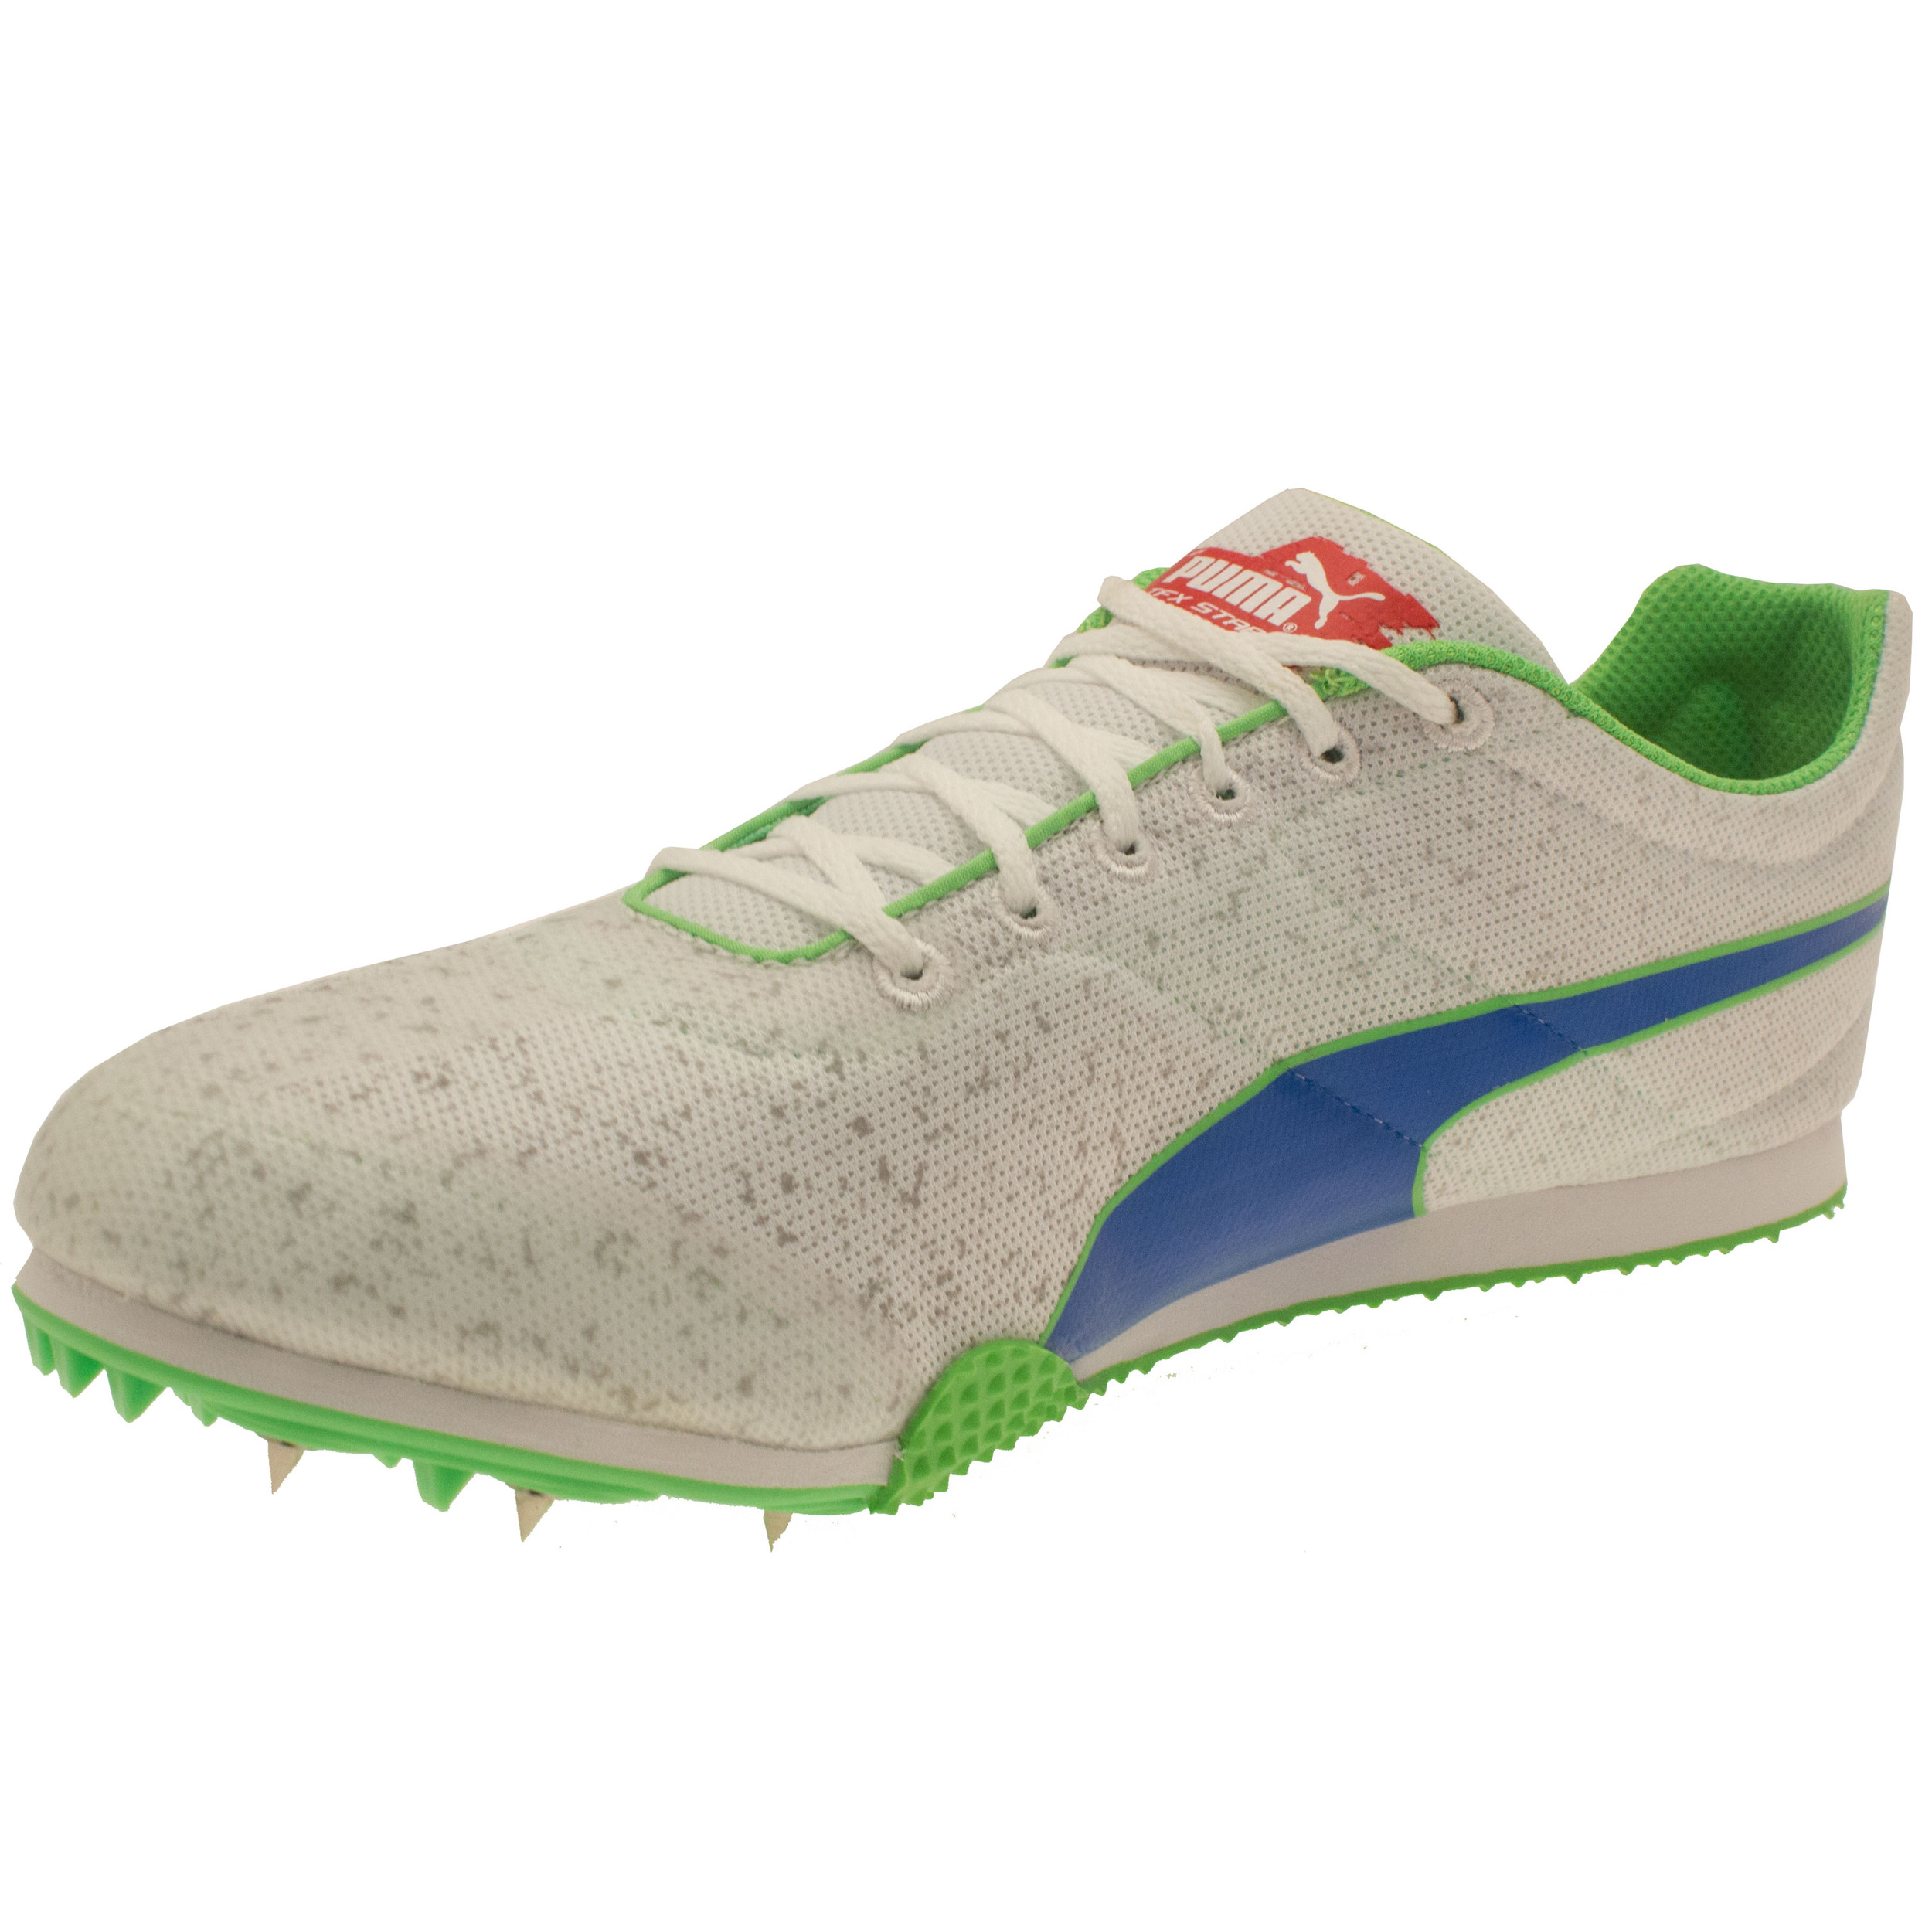 Puma TFX Sprint v3 Womens Running Training Track Spikes Shoes Trainers  Sneakers 8707838af